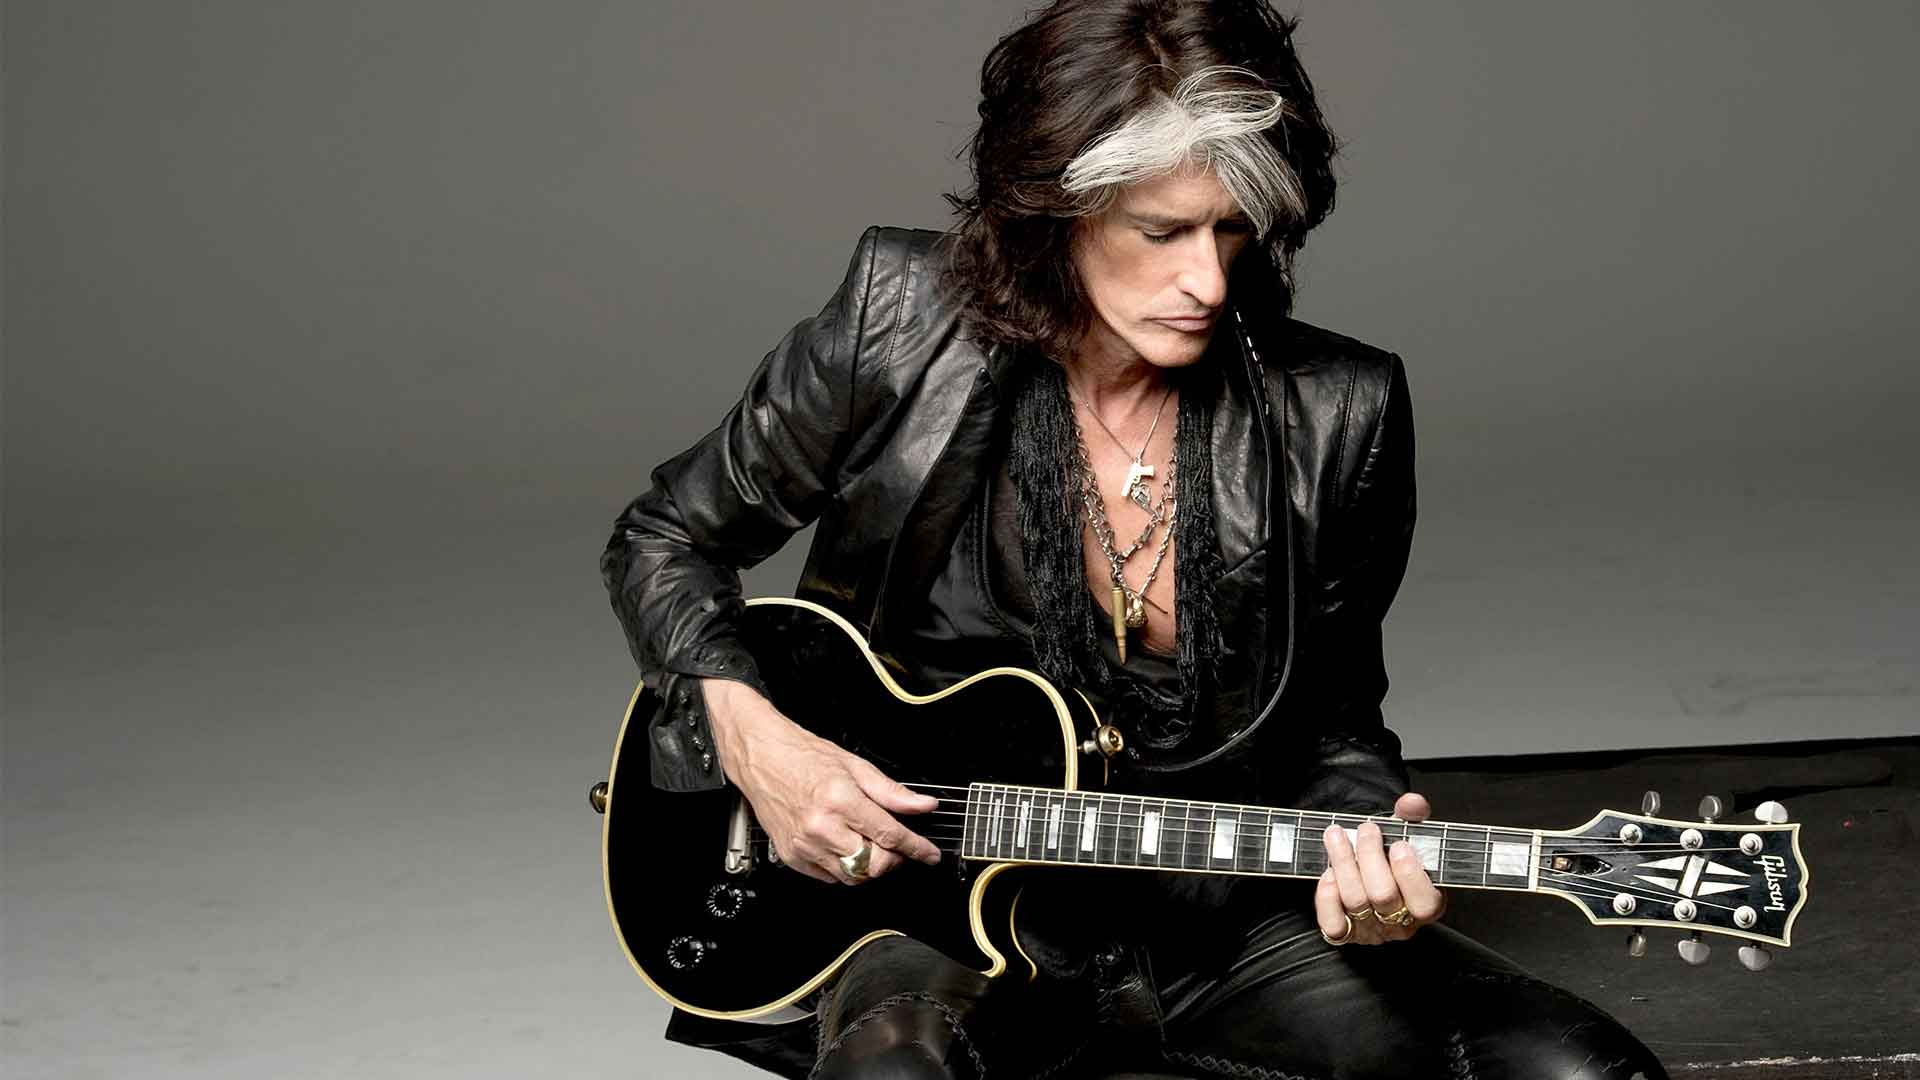 The 67-year old son of father (?) and mother(?), 190 cm tall Joe Perry in 2018 photo